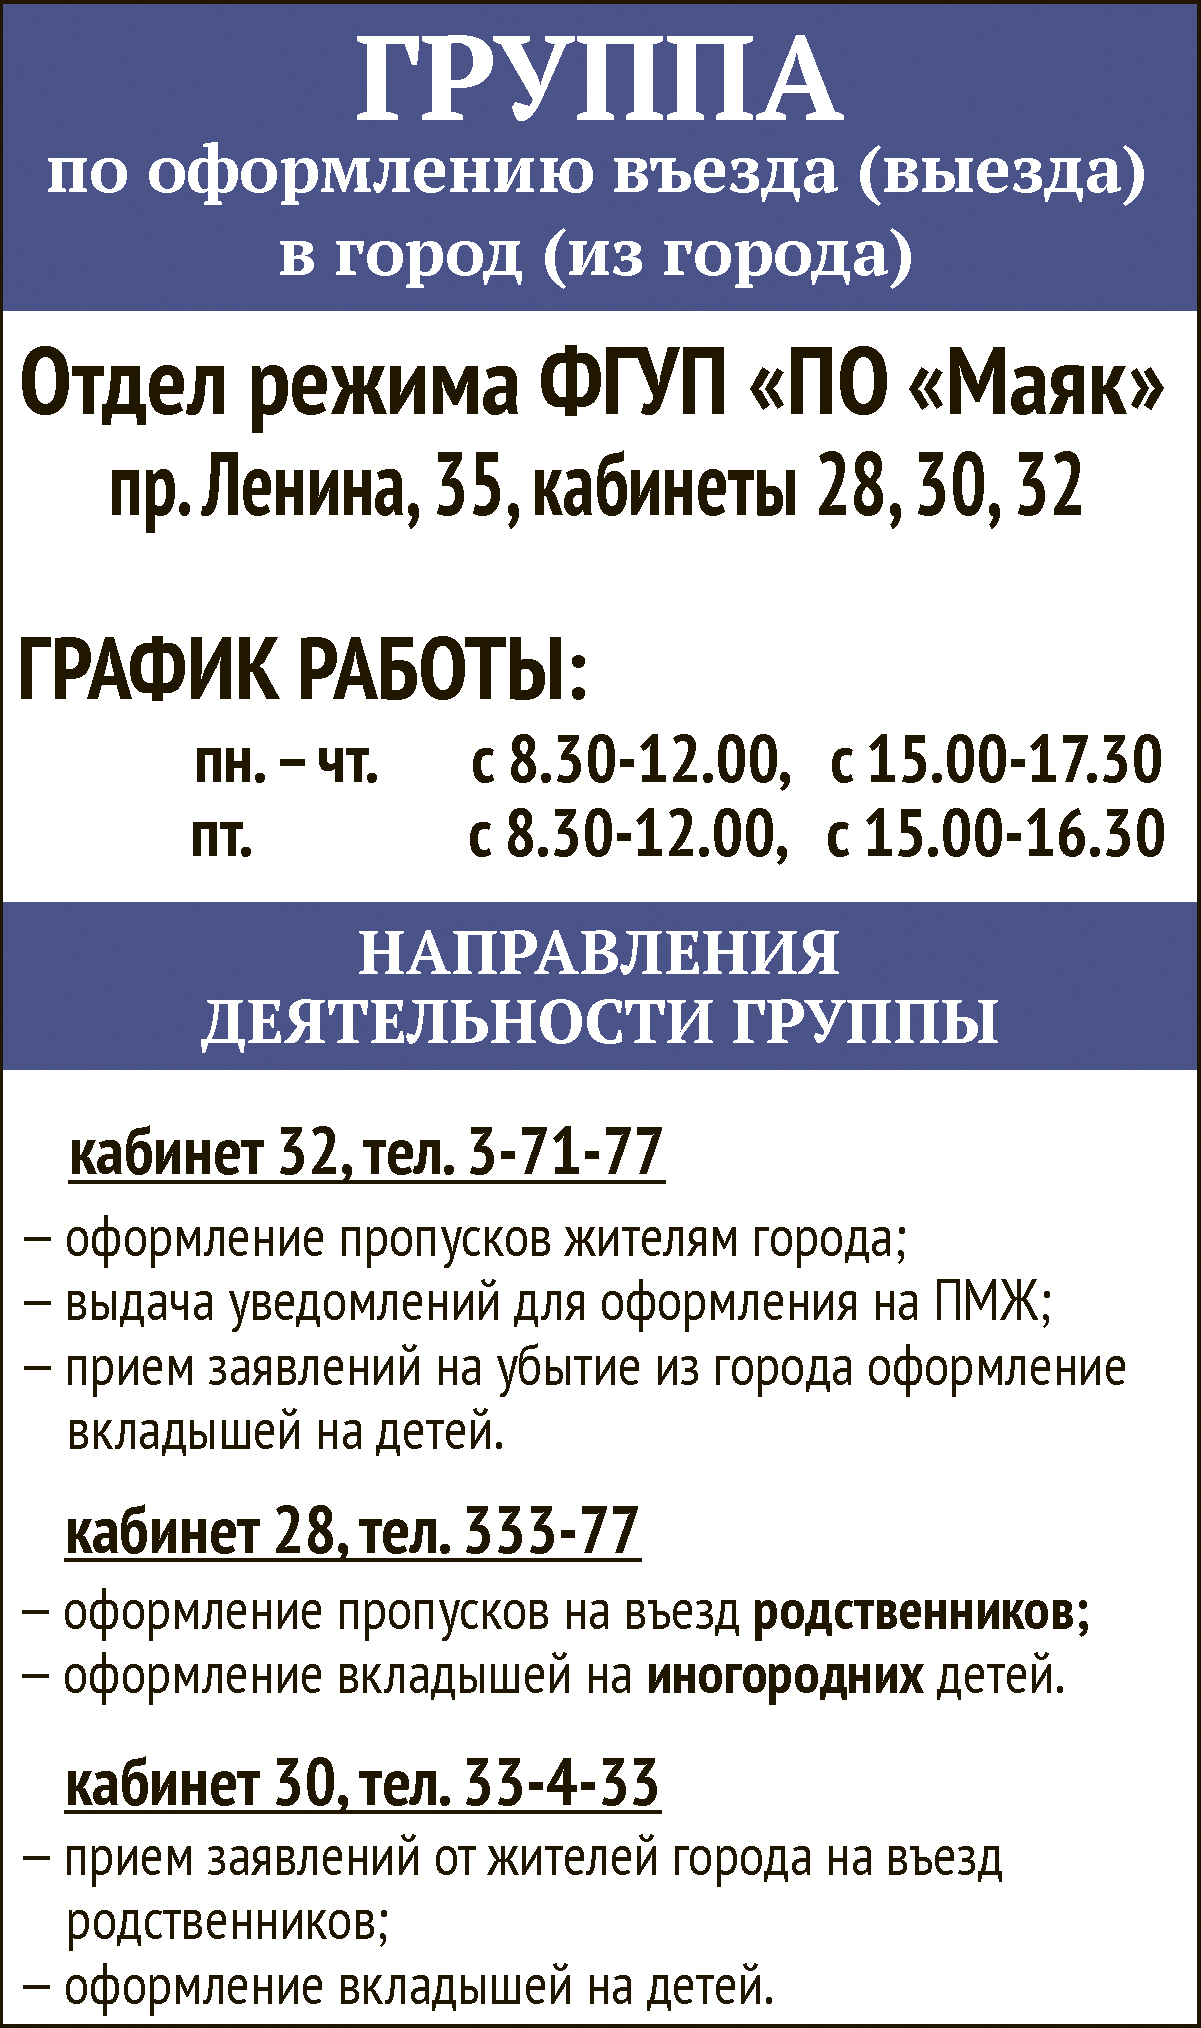 Schedule of work of the department of the regime